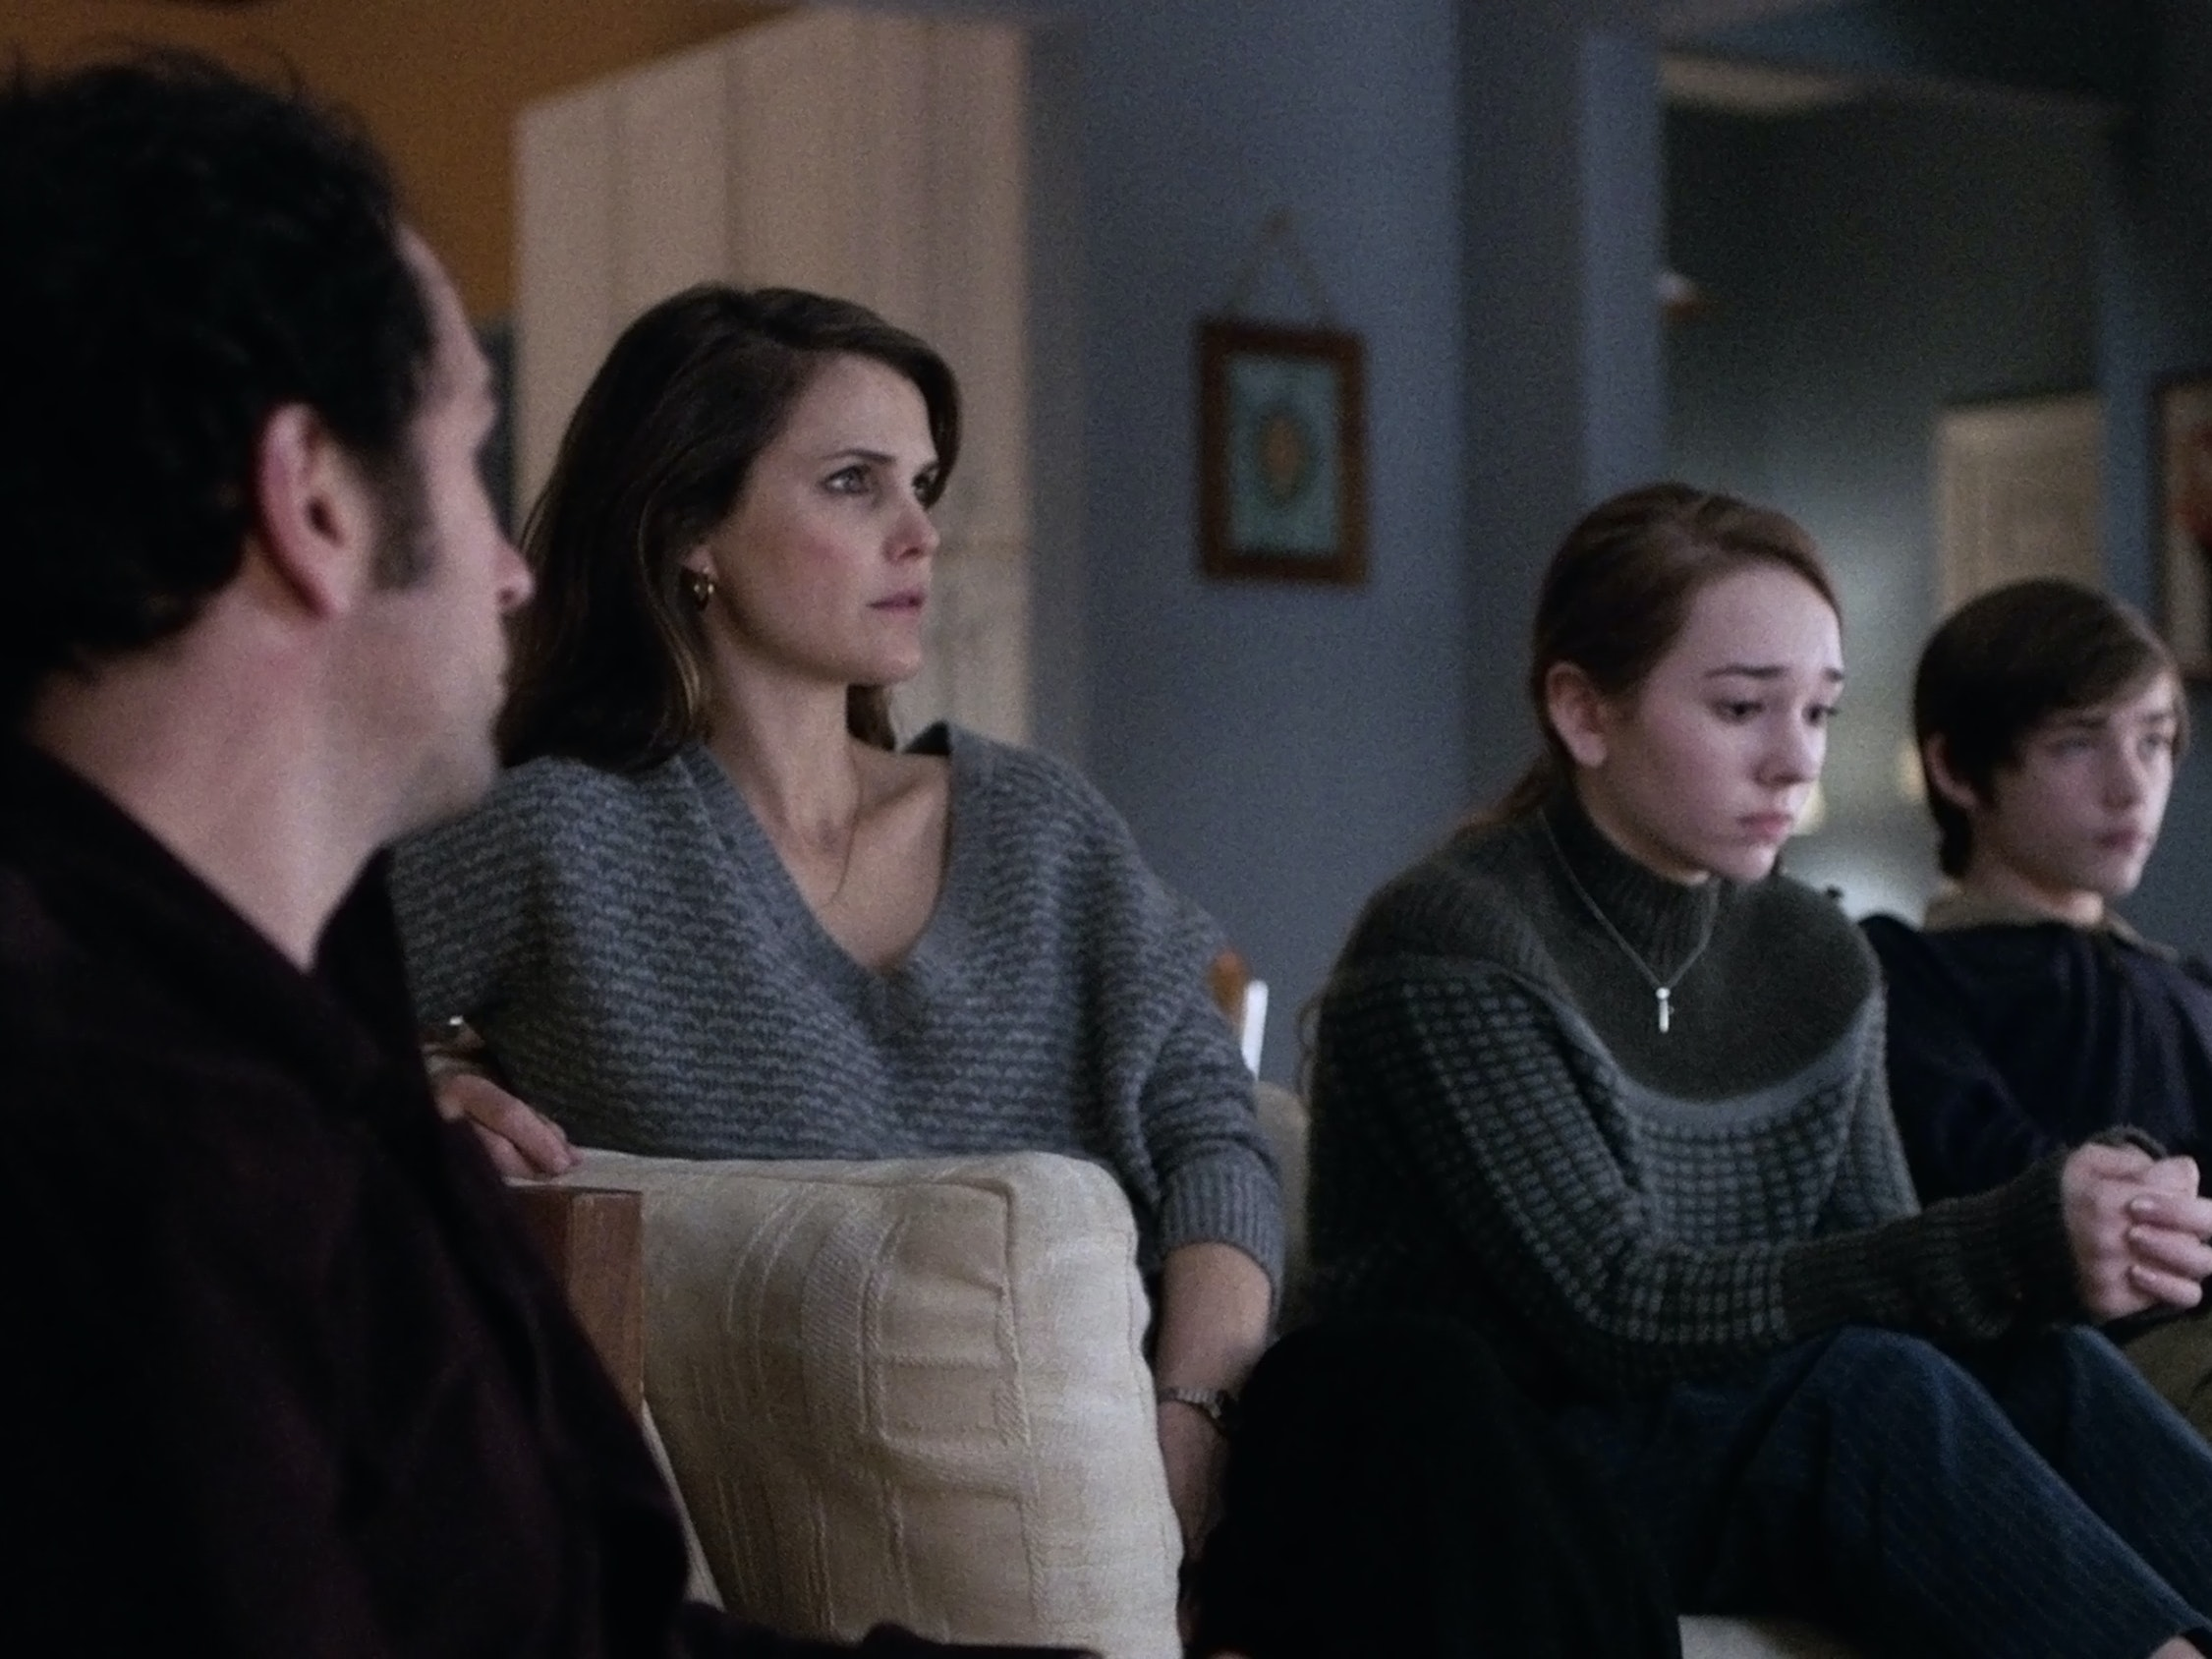 'The Day After' Speaks to Everyone's Worst Fears on 'The Americans'